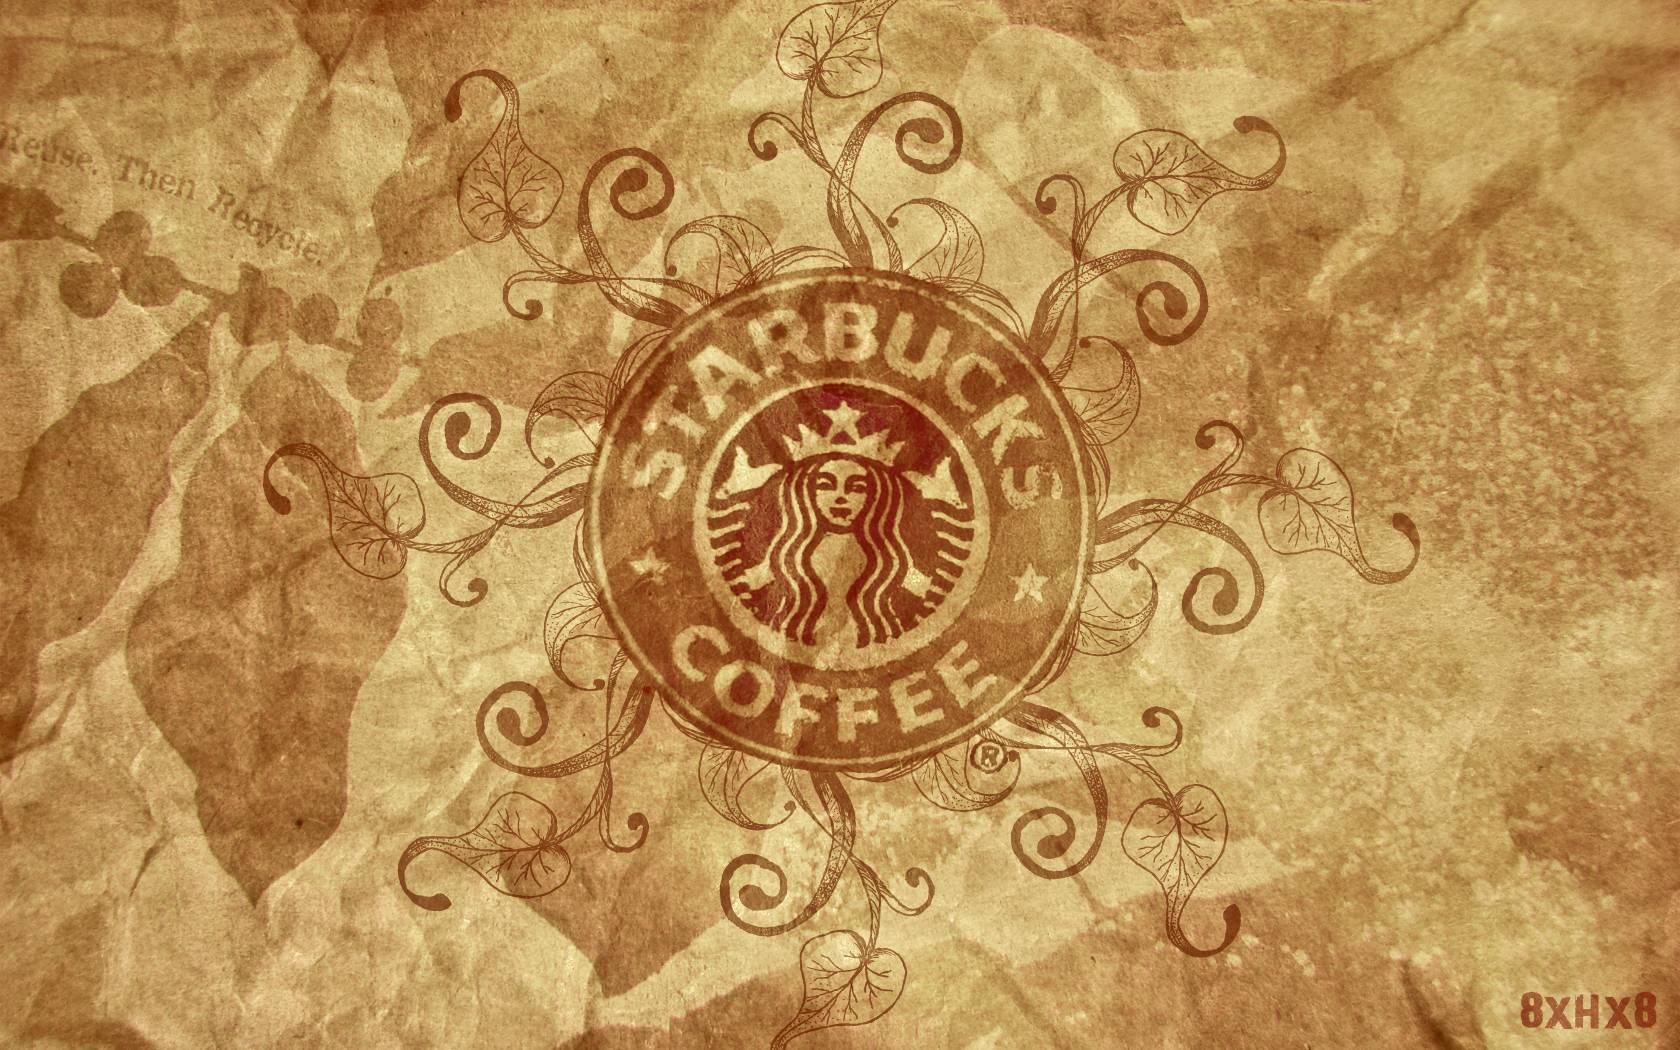 Fonds d'écran Starbucks : tous les wallpapers Starbucks